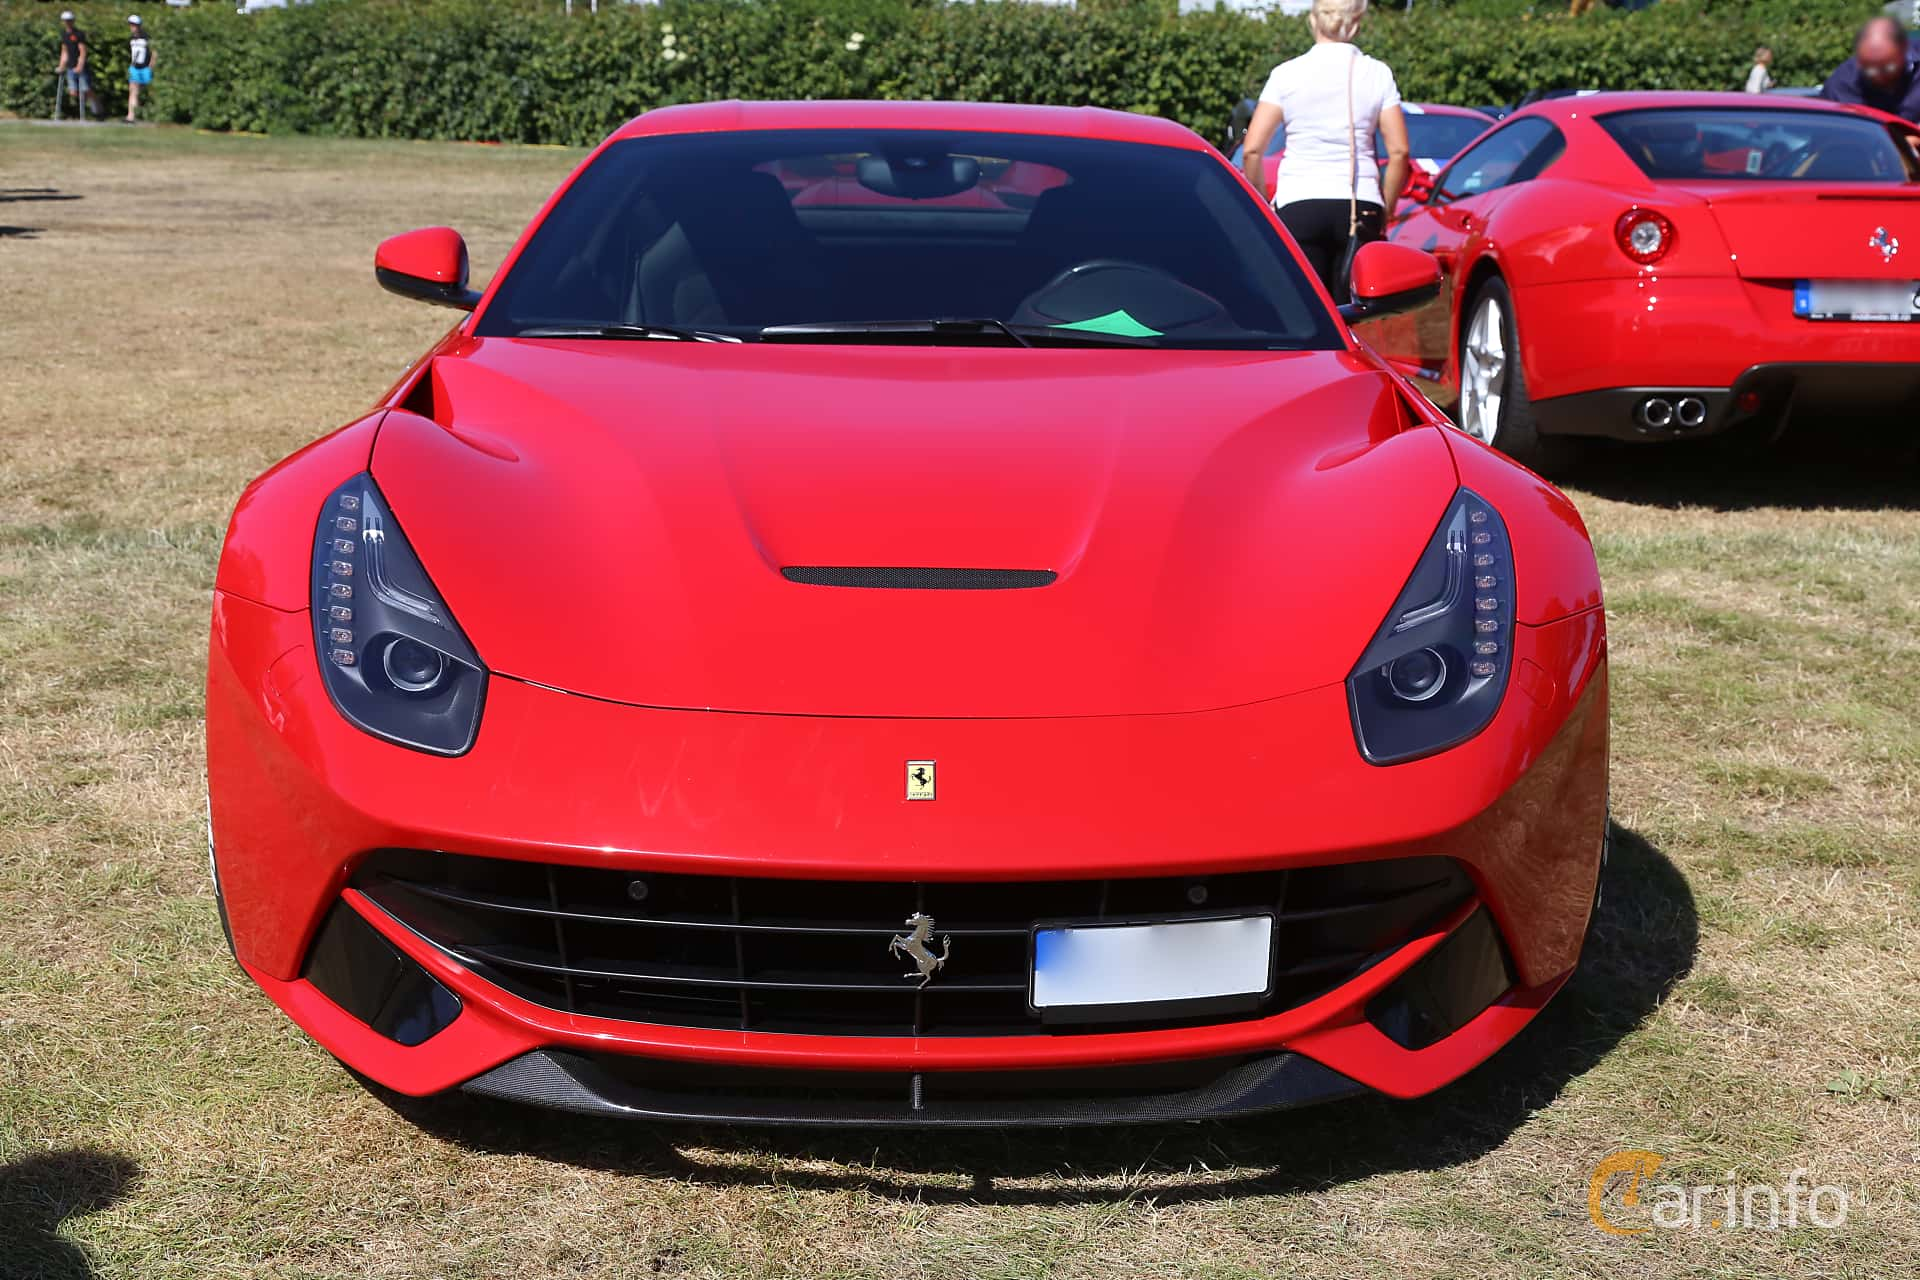 Ferrari F12berlinetta 6.3 V12  DCT, 740hp, 2013 at Cars and Coffee Stockholm 2018